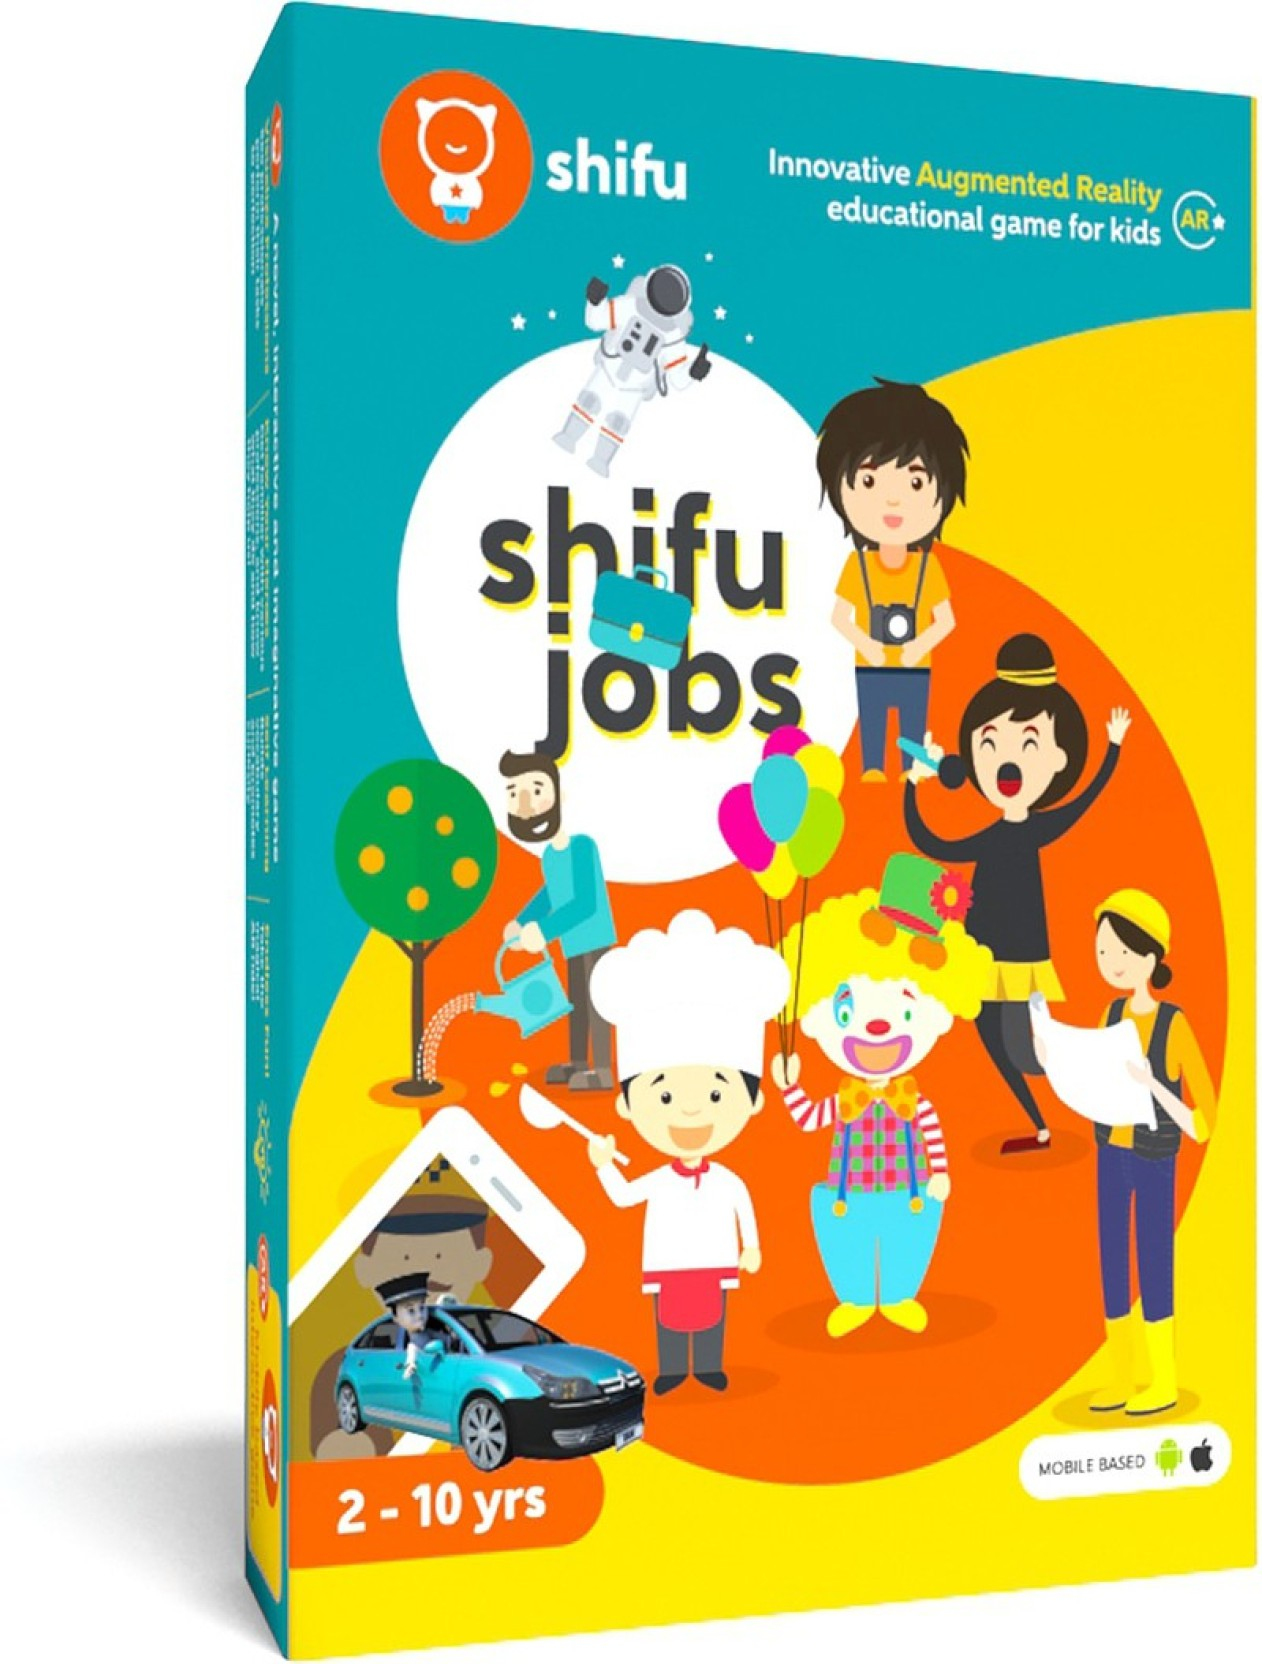 Shifu Jobs Augmented Reality Learning Games iOS & Android 60